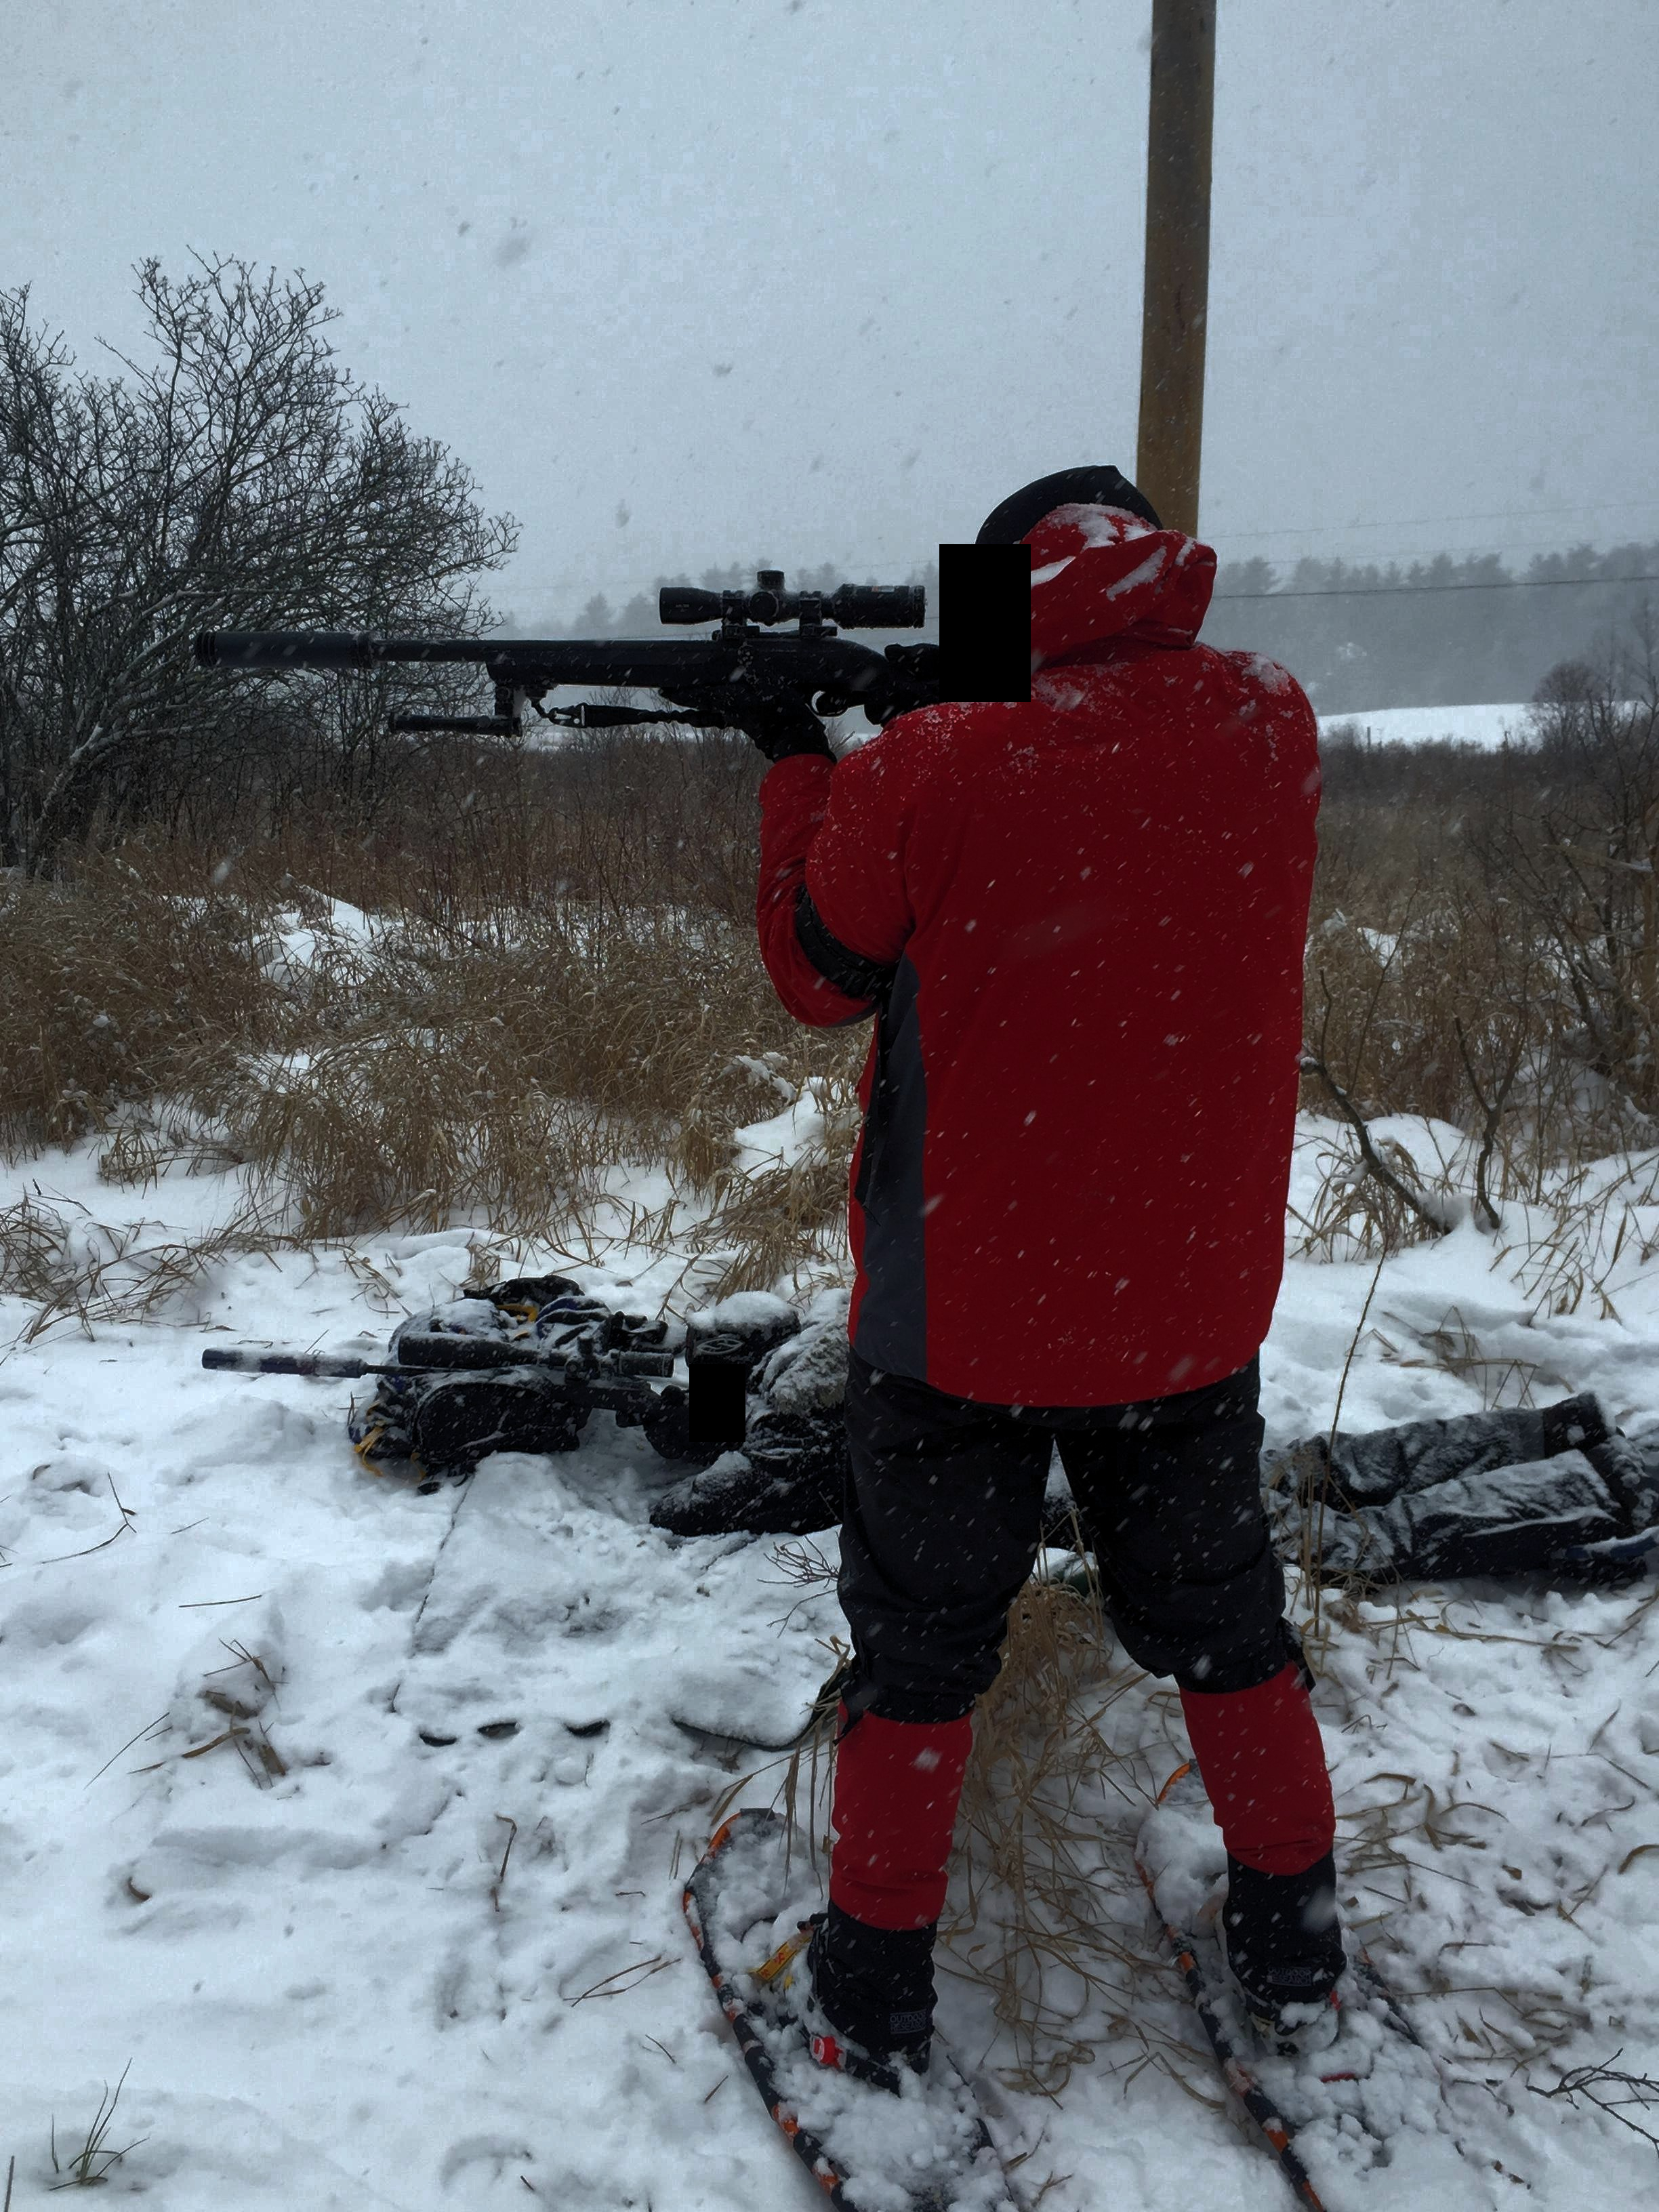 What did you think we were kidding when we said we were serious about precision shooting?